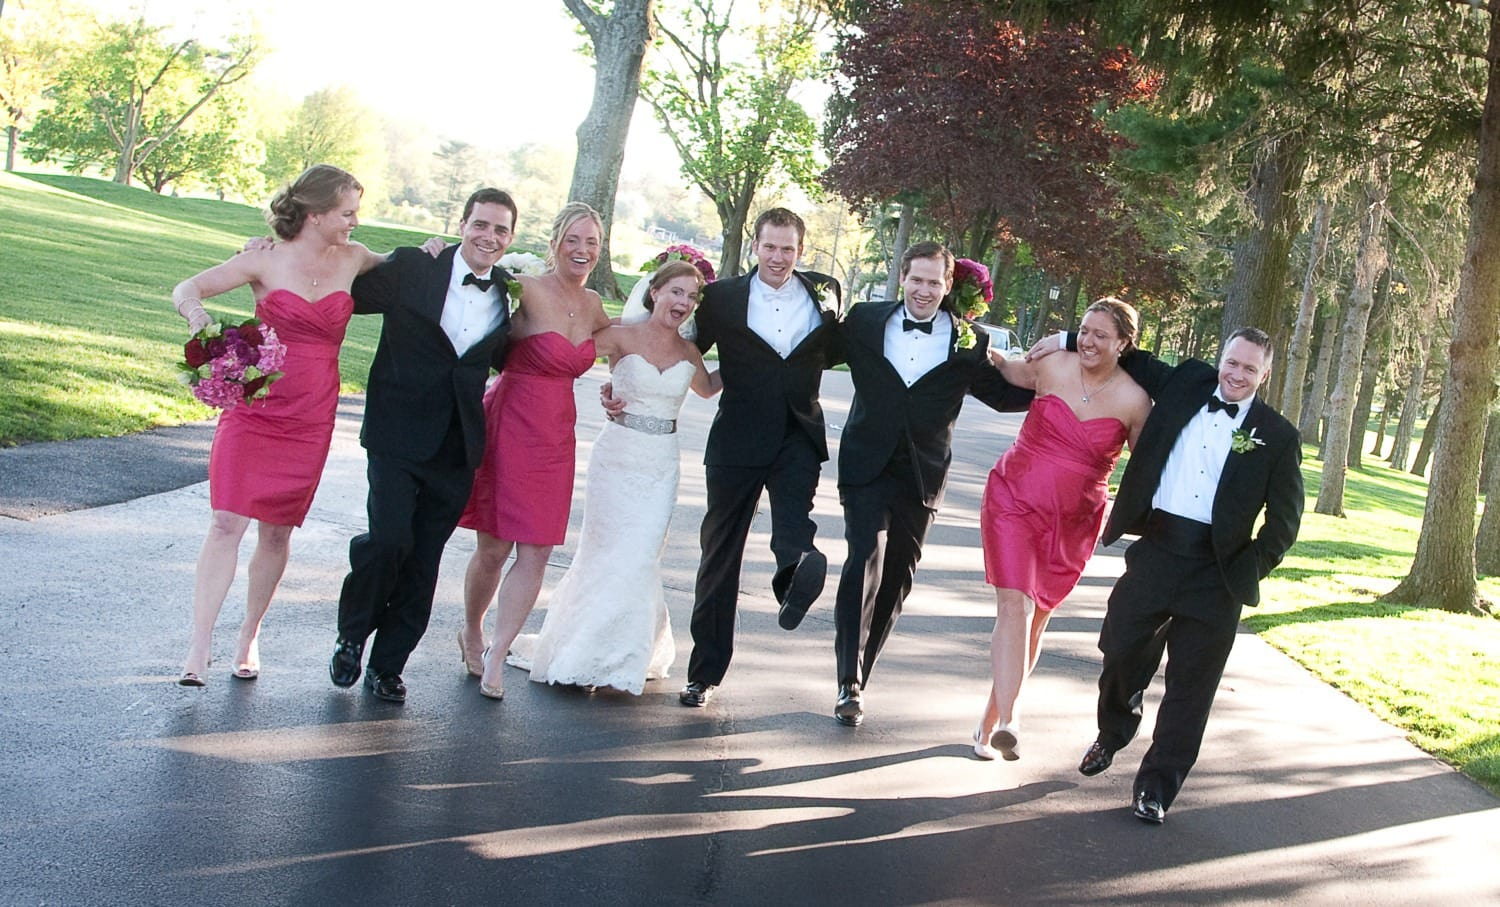 medium group wedding photography laughing